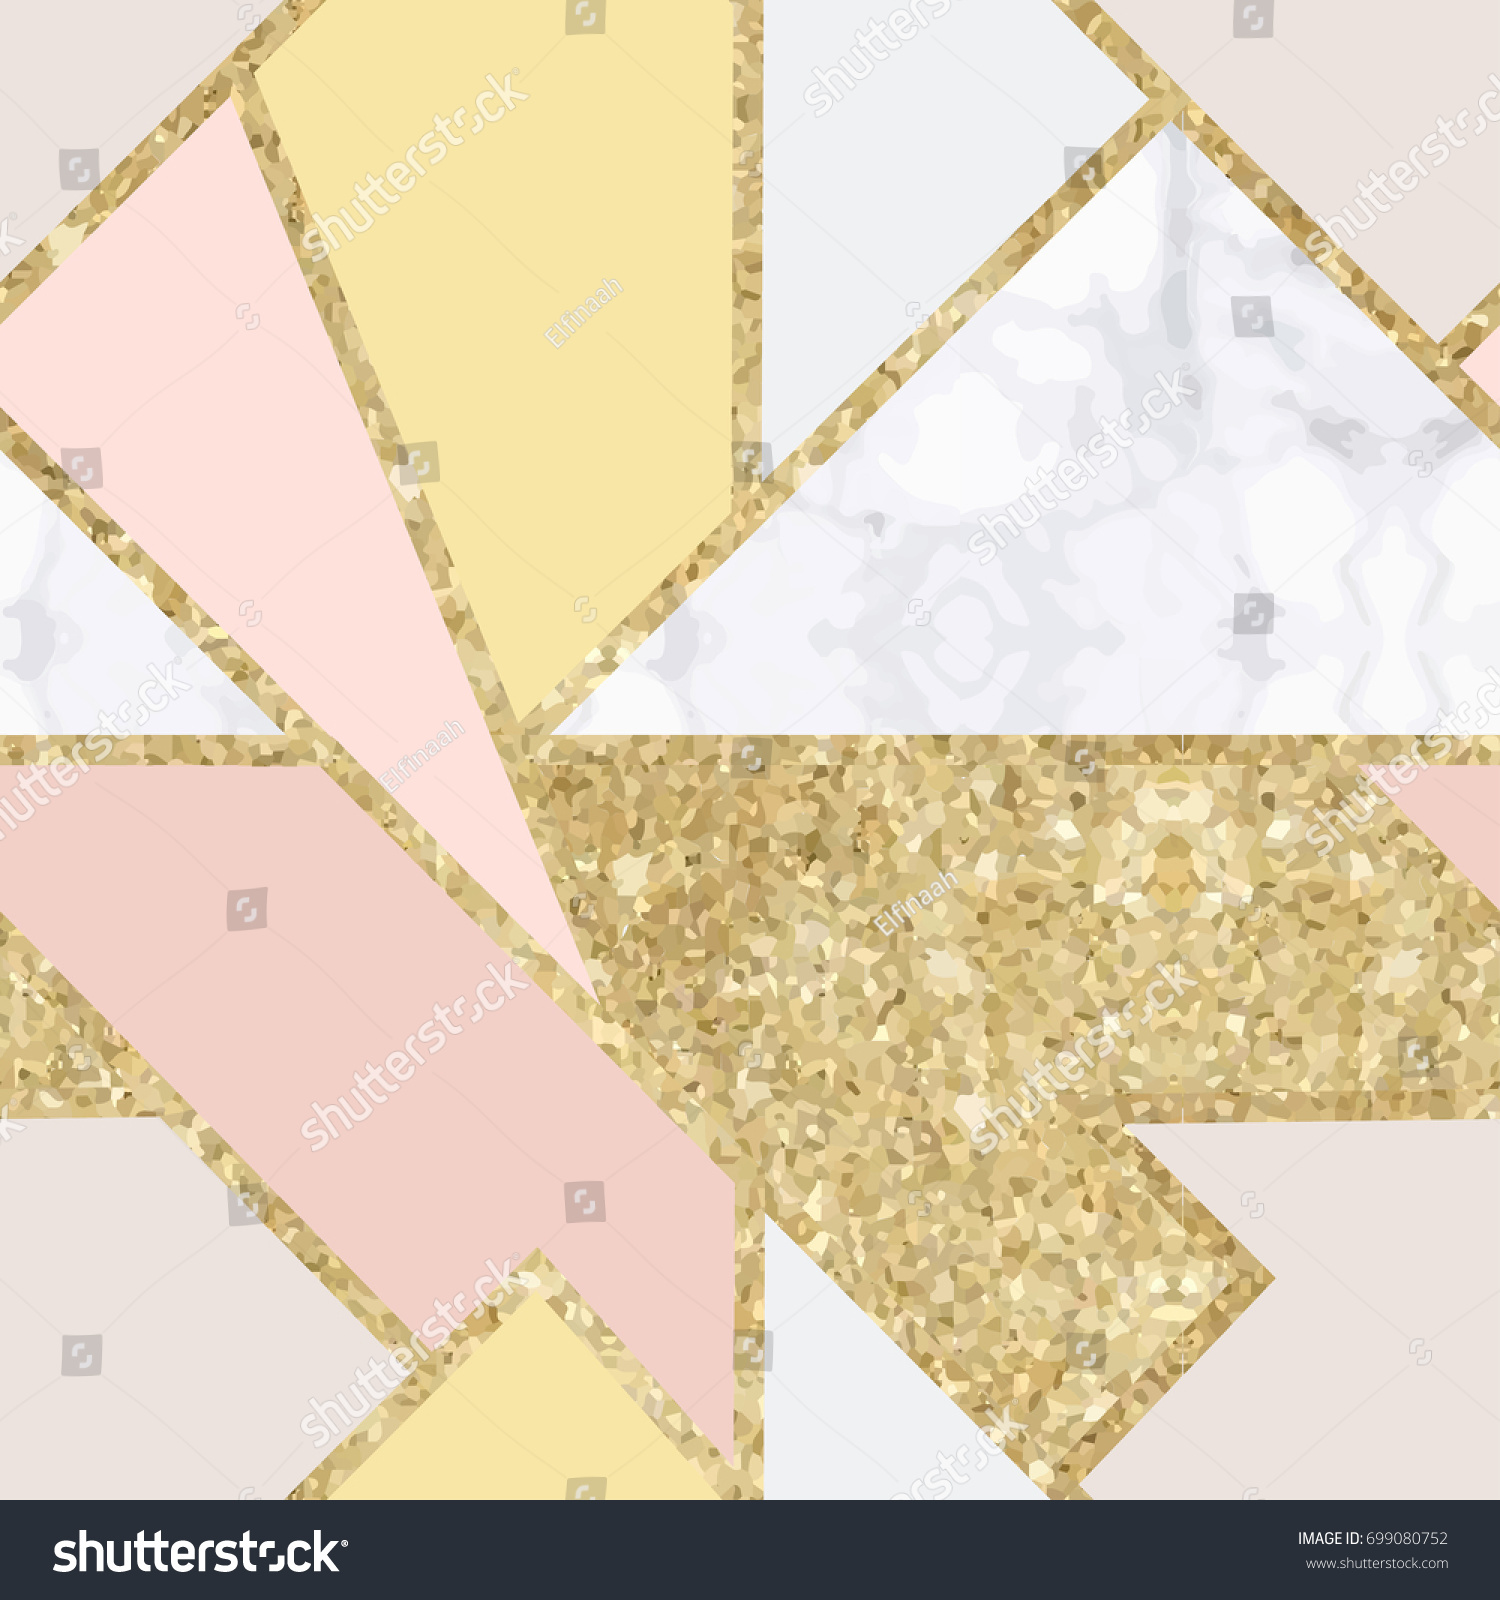 Download Wallpaper Marble Chic - stock-vector-seamless-polygonal-pattern-gold-foil-bright-elegant-background-geometric-sparkly-texture-chic-699080752  Snapshot_707989.jpg